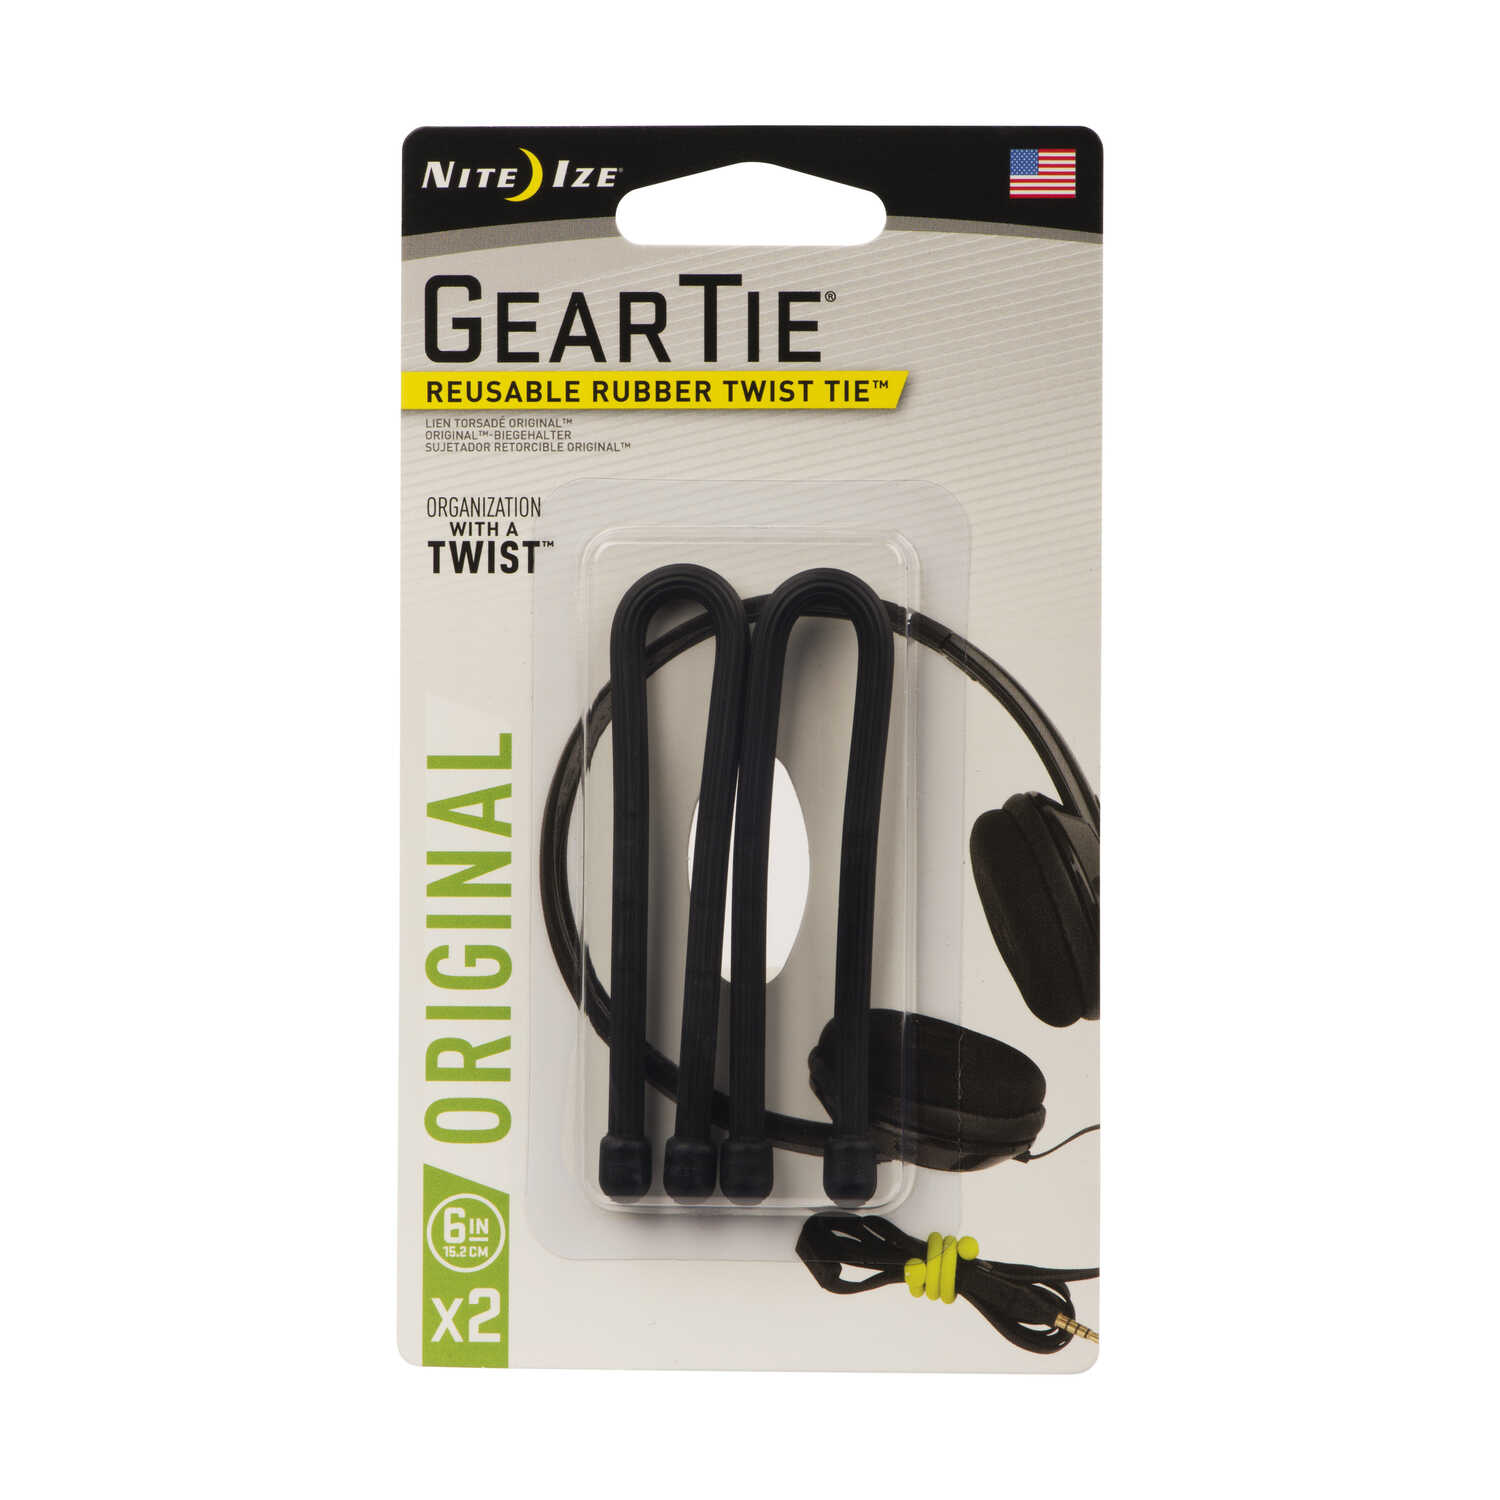 Nite Ize  Gear Tie  6 in. L Black  Twist Ties  2 pk